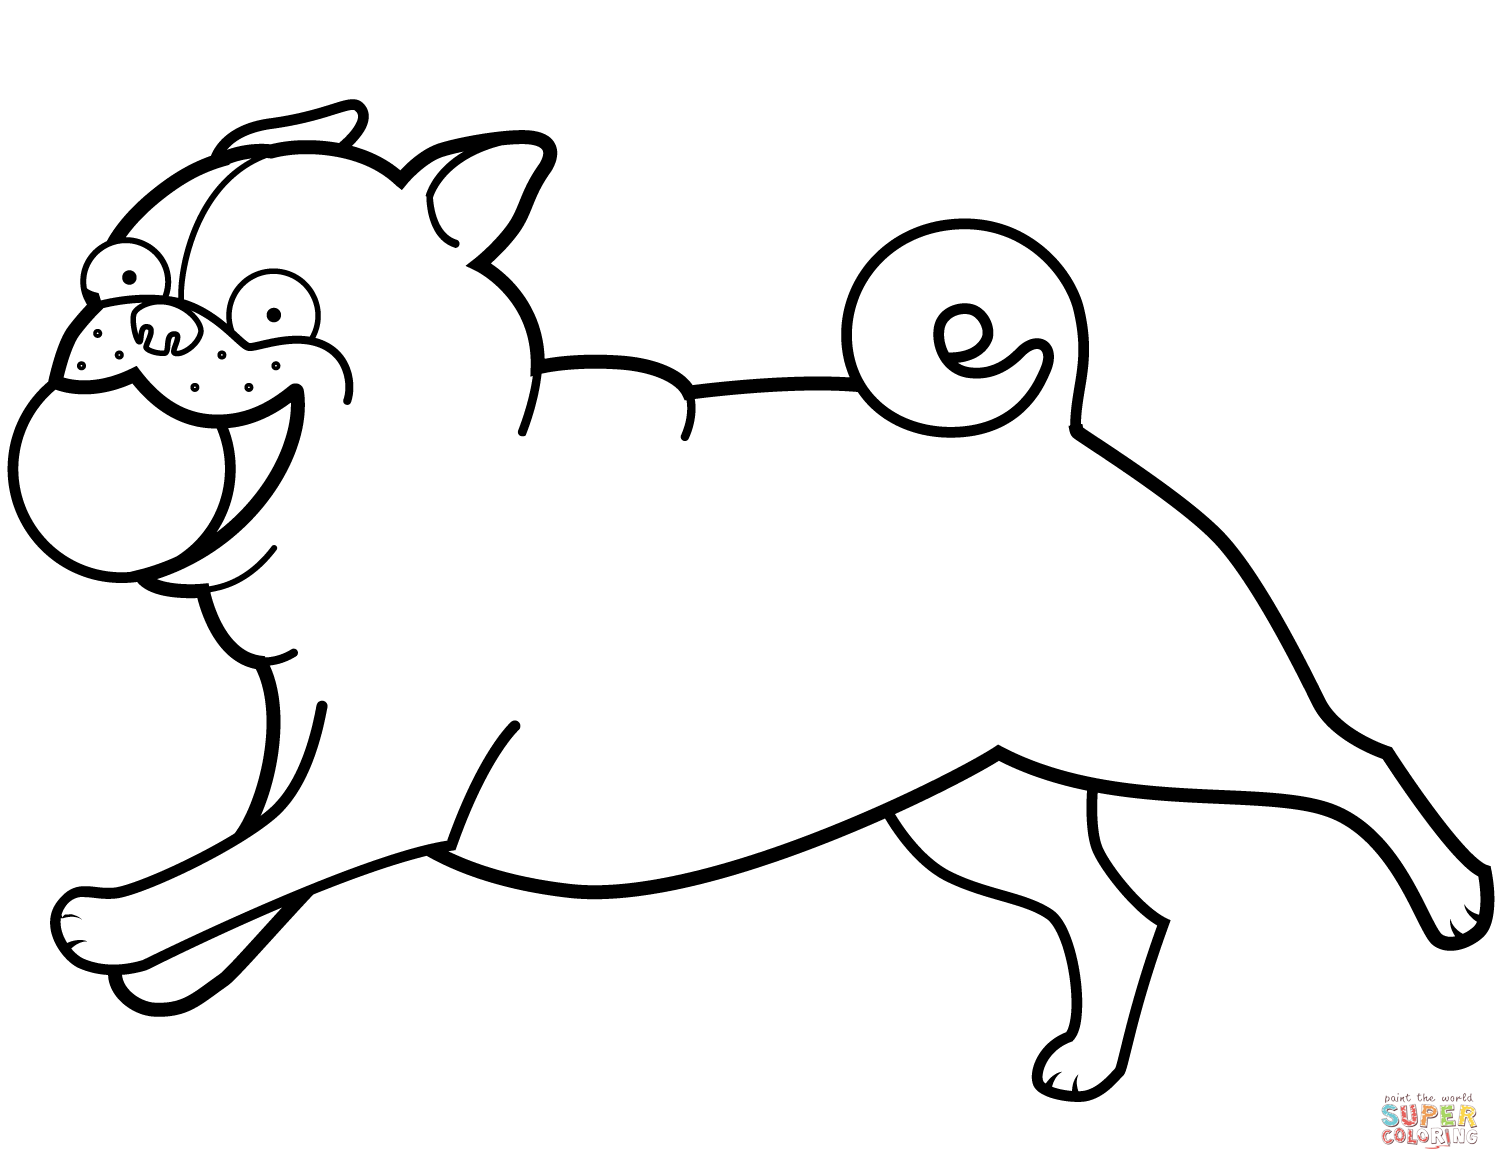 Employ Dog Coloring Pages Childrens Creative Time further Dog Paw Silhouette likewise Spongebob Coloring Pages together with Water Faucet Sketch 10373981 furthermore 849702654669401637. on pet drawings